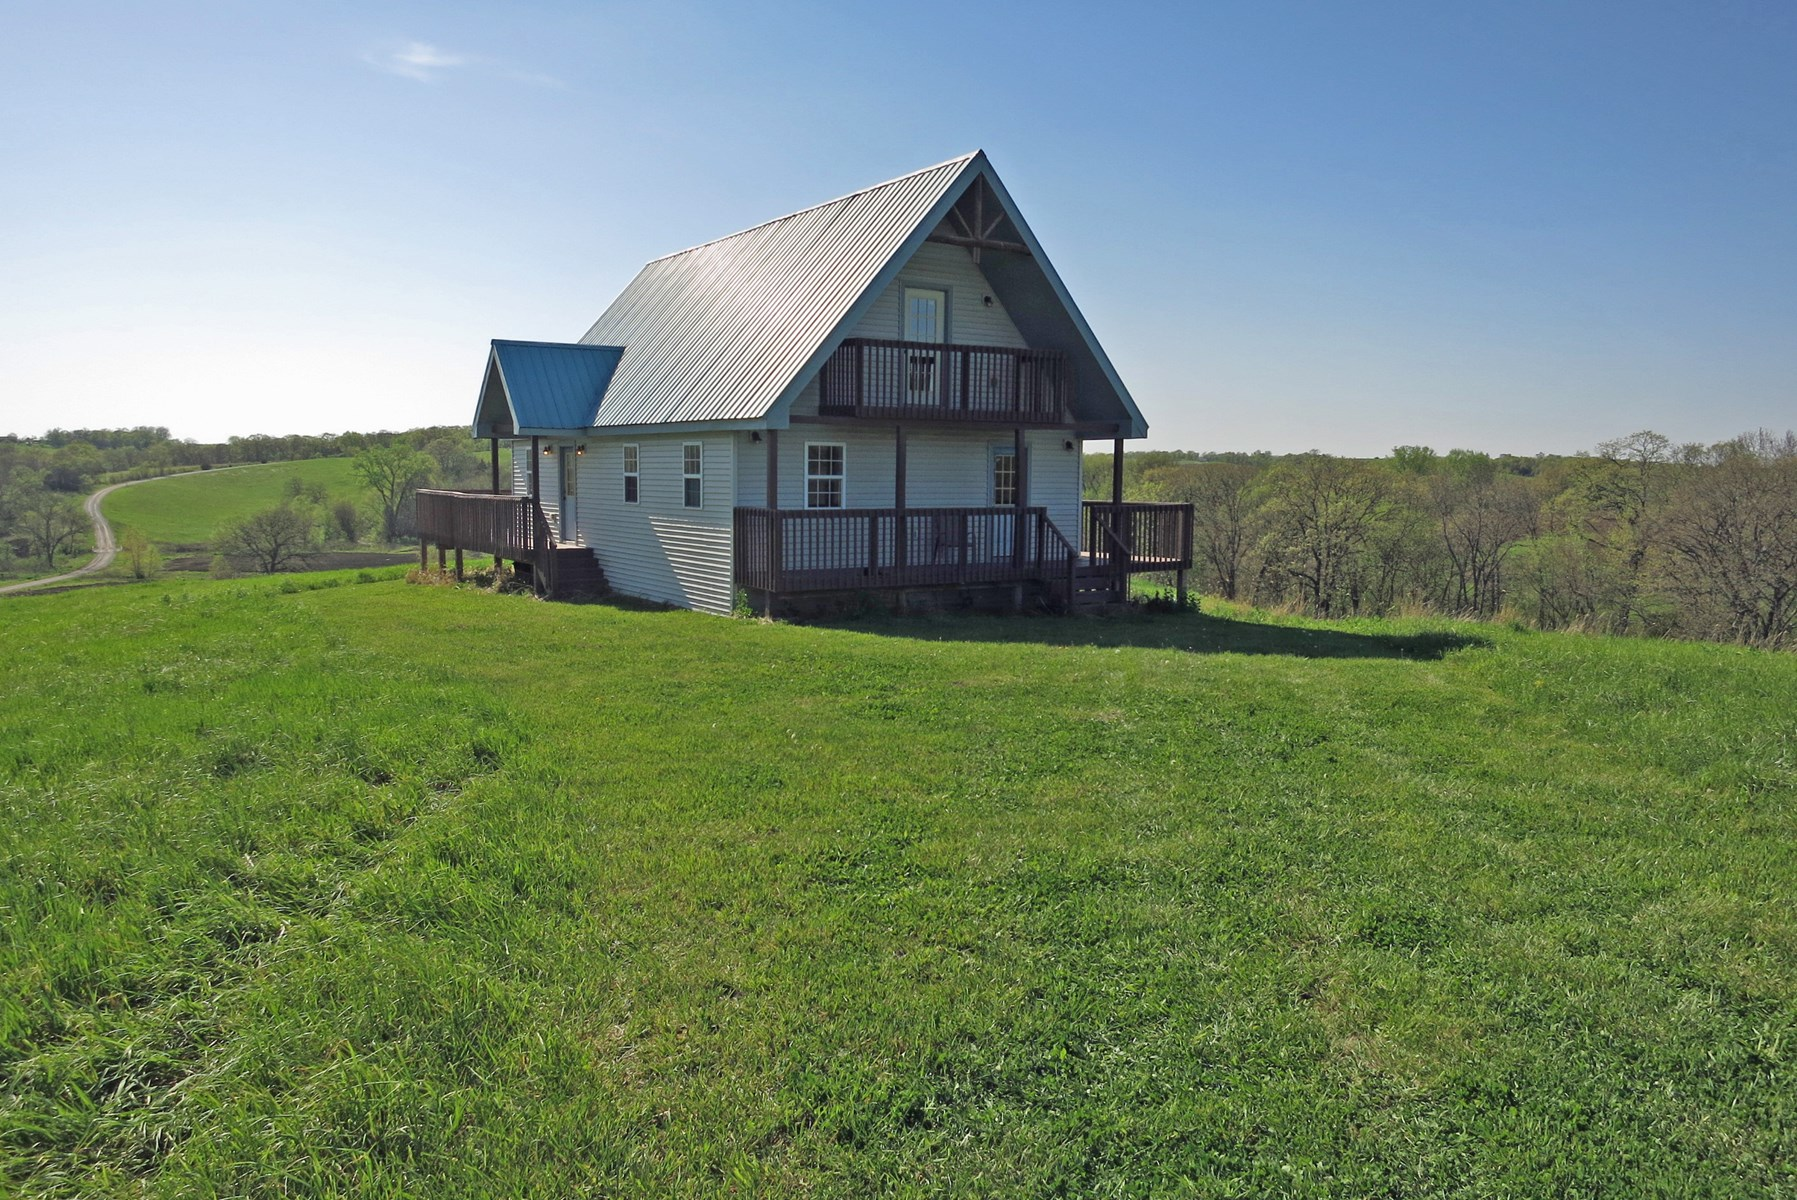 For Sale 1000 sq. ft. Cabin on 11.5 Acres m/l